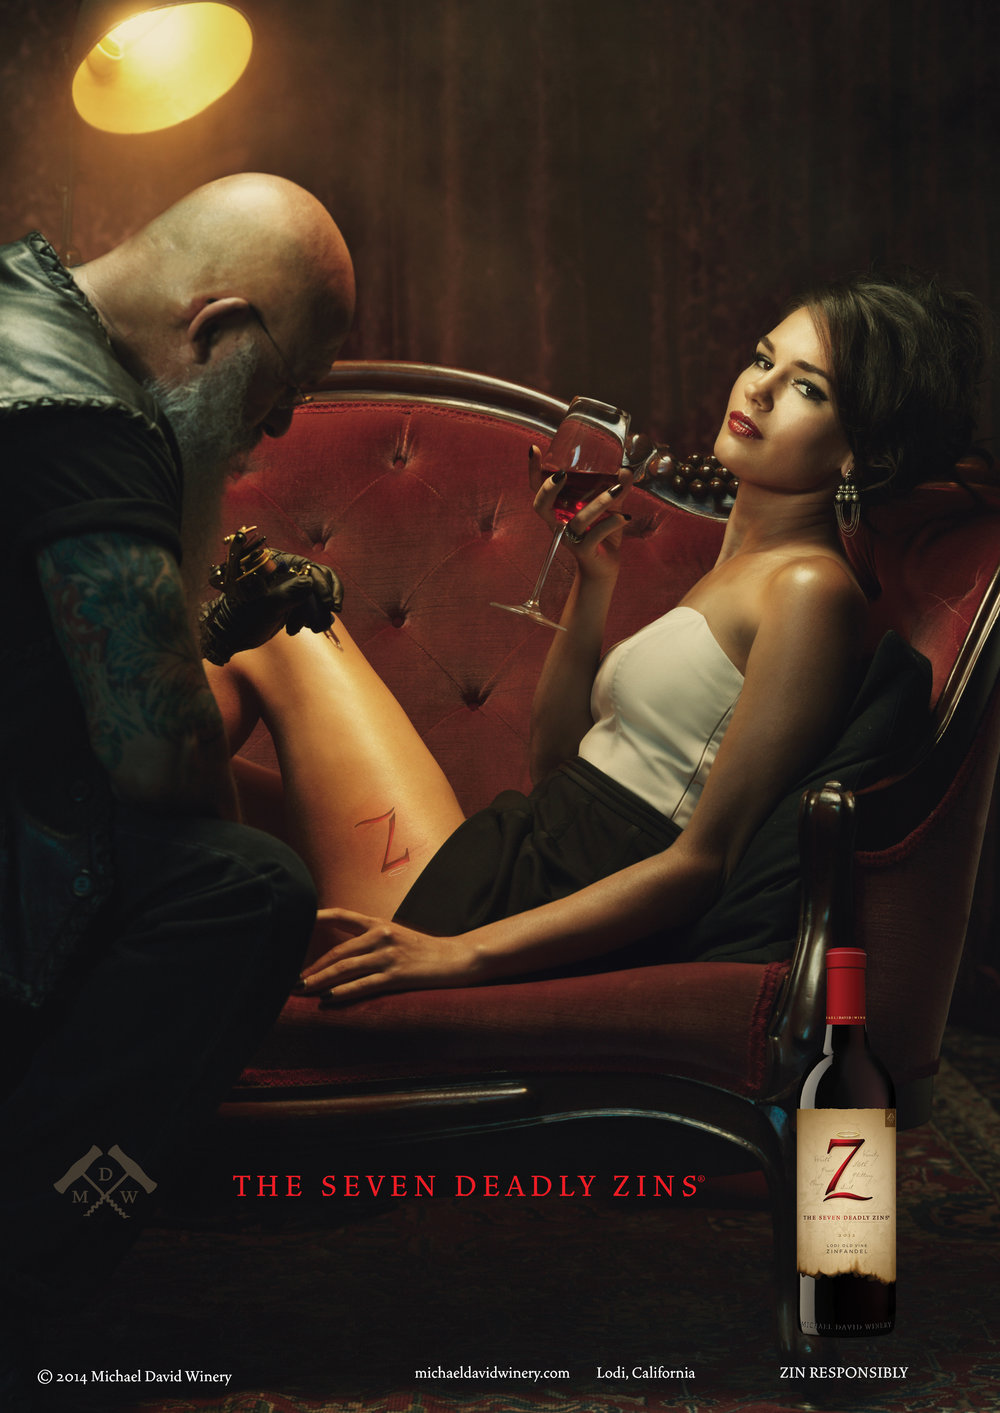 THE SEVEN DEADLY ZINS - We translated naughty into lush, unexpected and inviting for Michael David's flagship brand, The Seven Deadly Zins. The campaign ran in Wine Spectator and Wine Enthusiast magazines, in-store displays, social and as digital media.THE CONCEPTWe see an amazing visual of a beautiful, sensuous woman reclining on a tattoo parlor couch as the artist tattoos the Seven Deadly Zins logo on her thigh. A single bright light illuminates the image and a David Lynchesque red velvet curtain brings the mood even more so into the surreal. The strong visual message of being unconventional, forbidden and sensual differentiates the brand from mundane vineyard-themed wine advertising.THE RESULTSThe Seven Deadly Zins had started small in Lodi with fewer than 25,000 cases. After the relaunch of the packaging and subsequent advertising campaign, the brand grew tenfold. It was named an Impact Hot Brand in 2016, and 7 Deadly Zins is now America's No. 1 Zinfandel by dollar sales